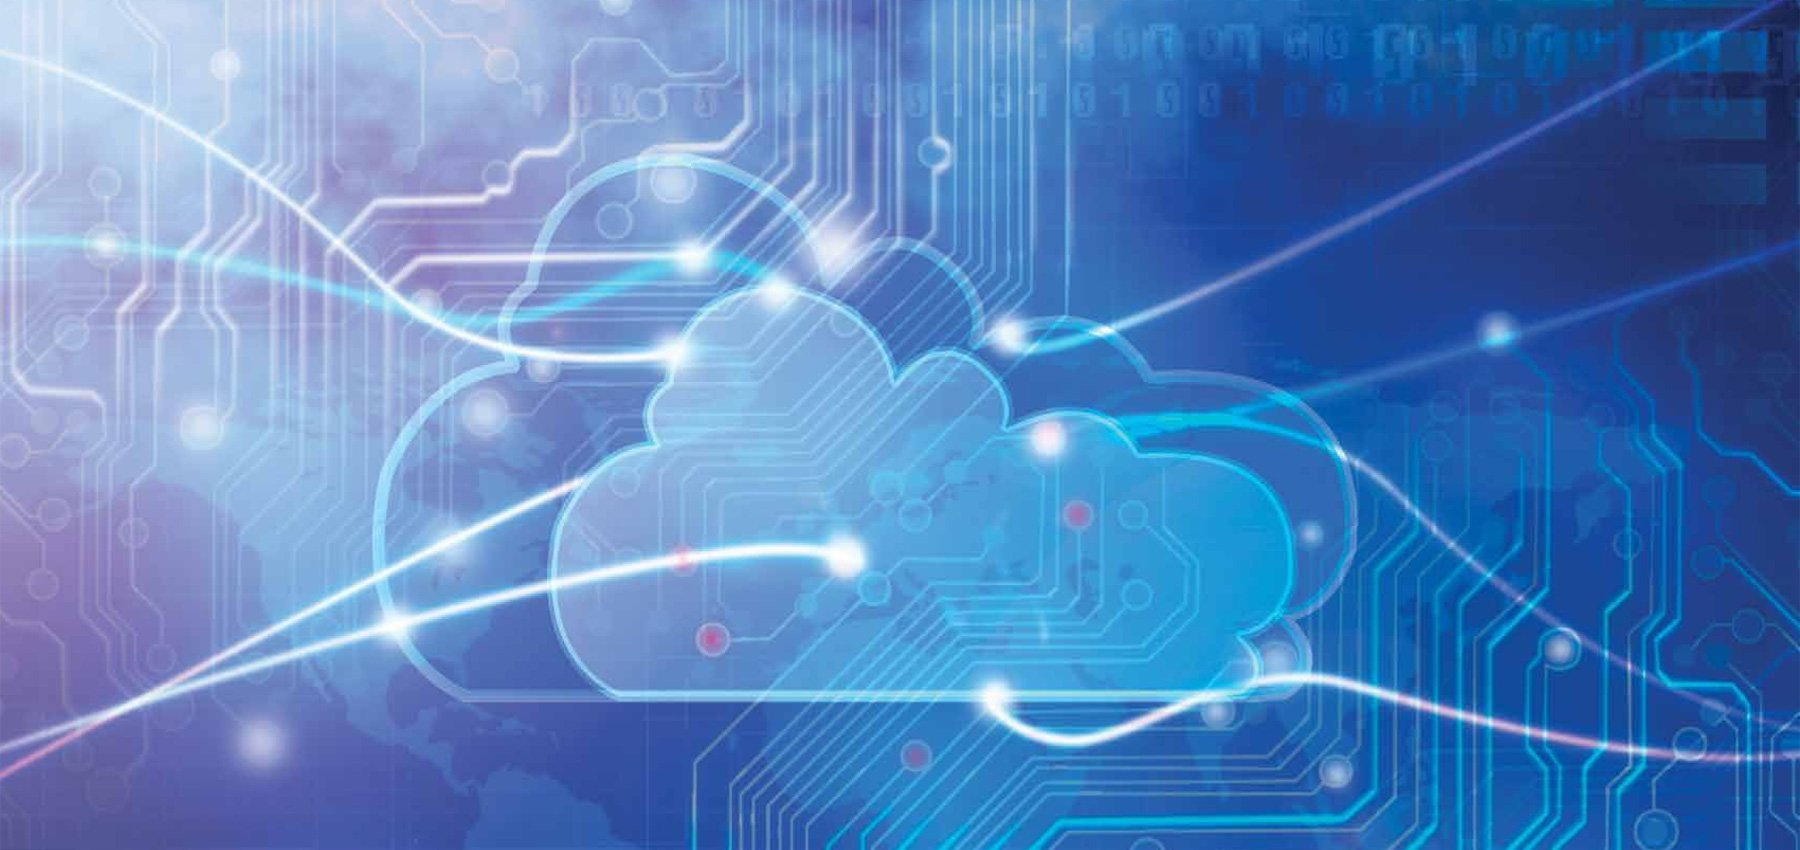 There's a Better Way to Reach the Cloud